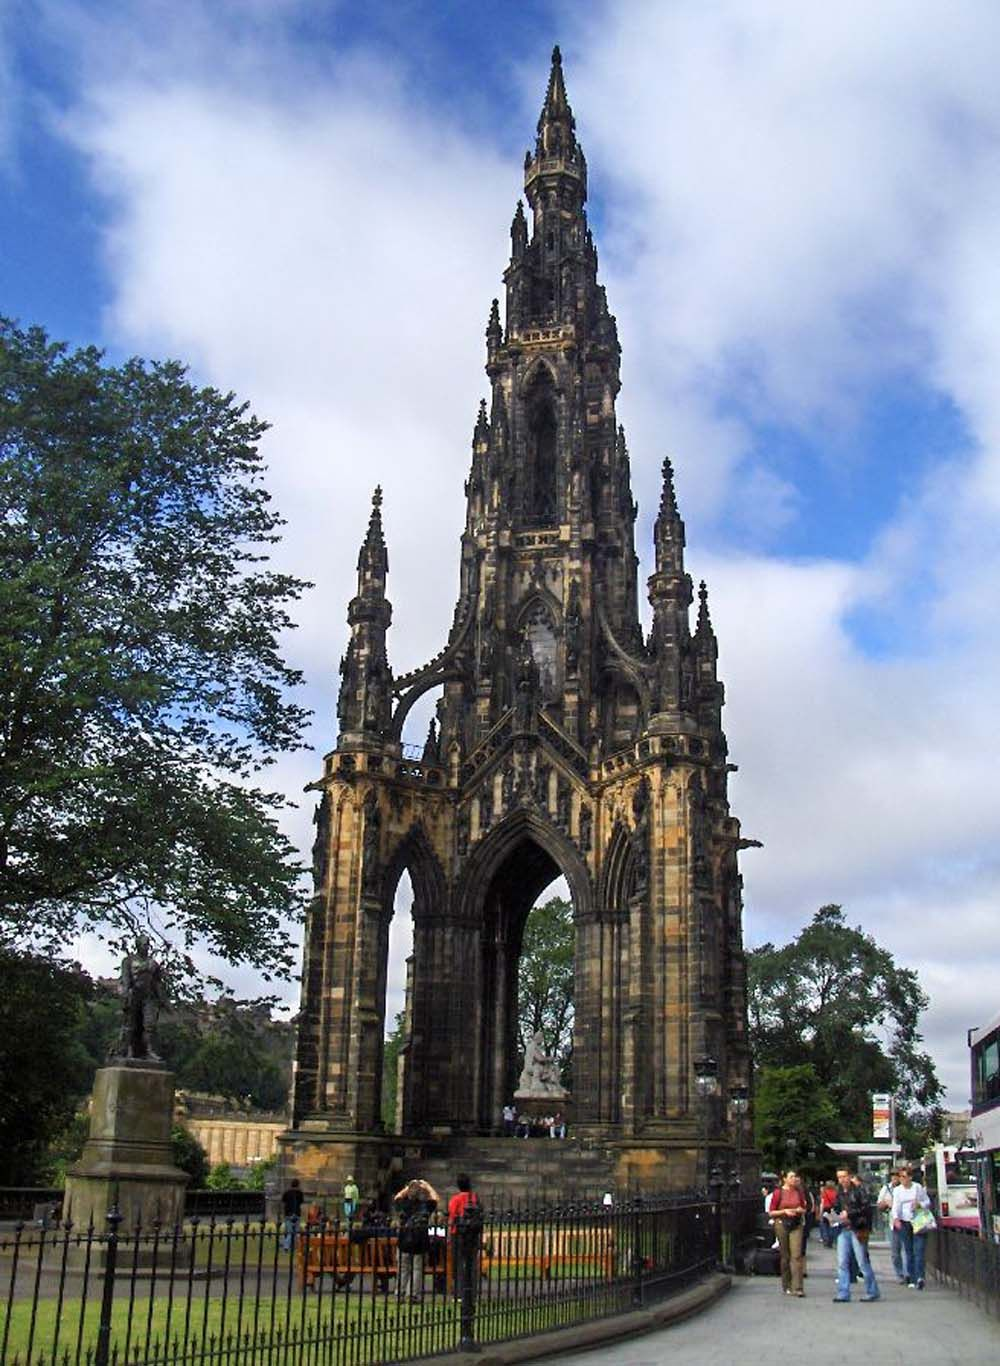 Scott Monument. What To Do In Scotland: 35 Amazing Treasures to See While in Scotland. stayreport.com